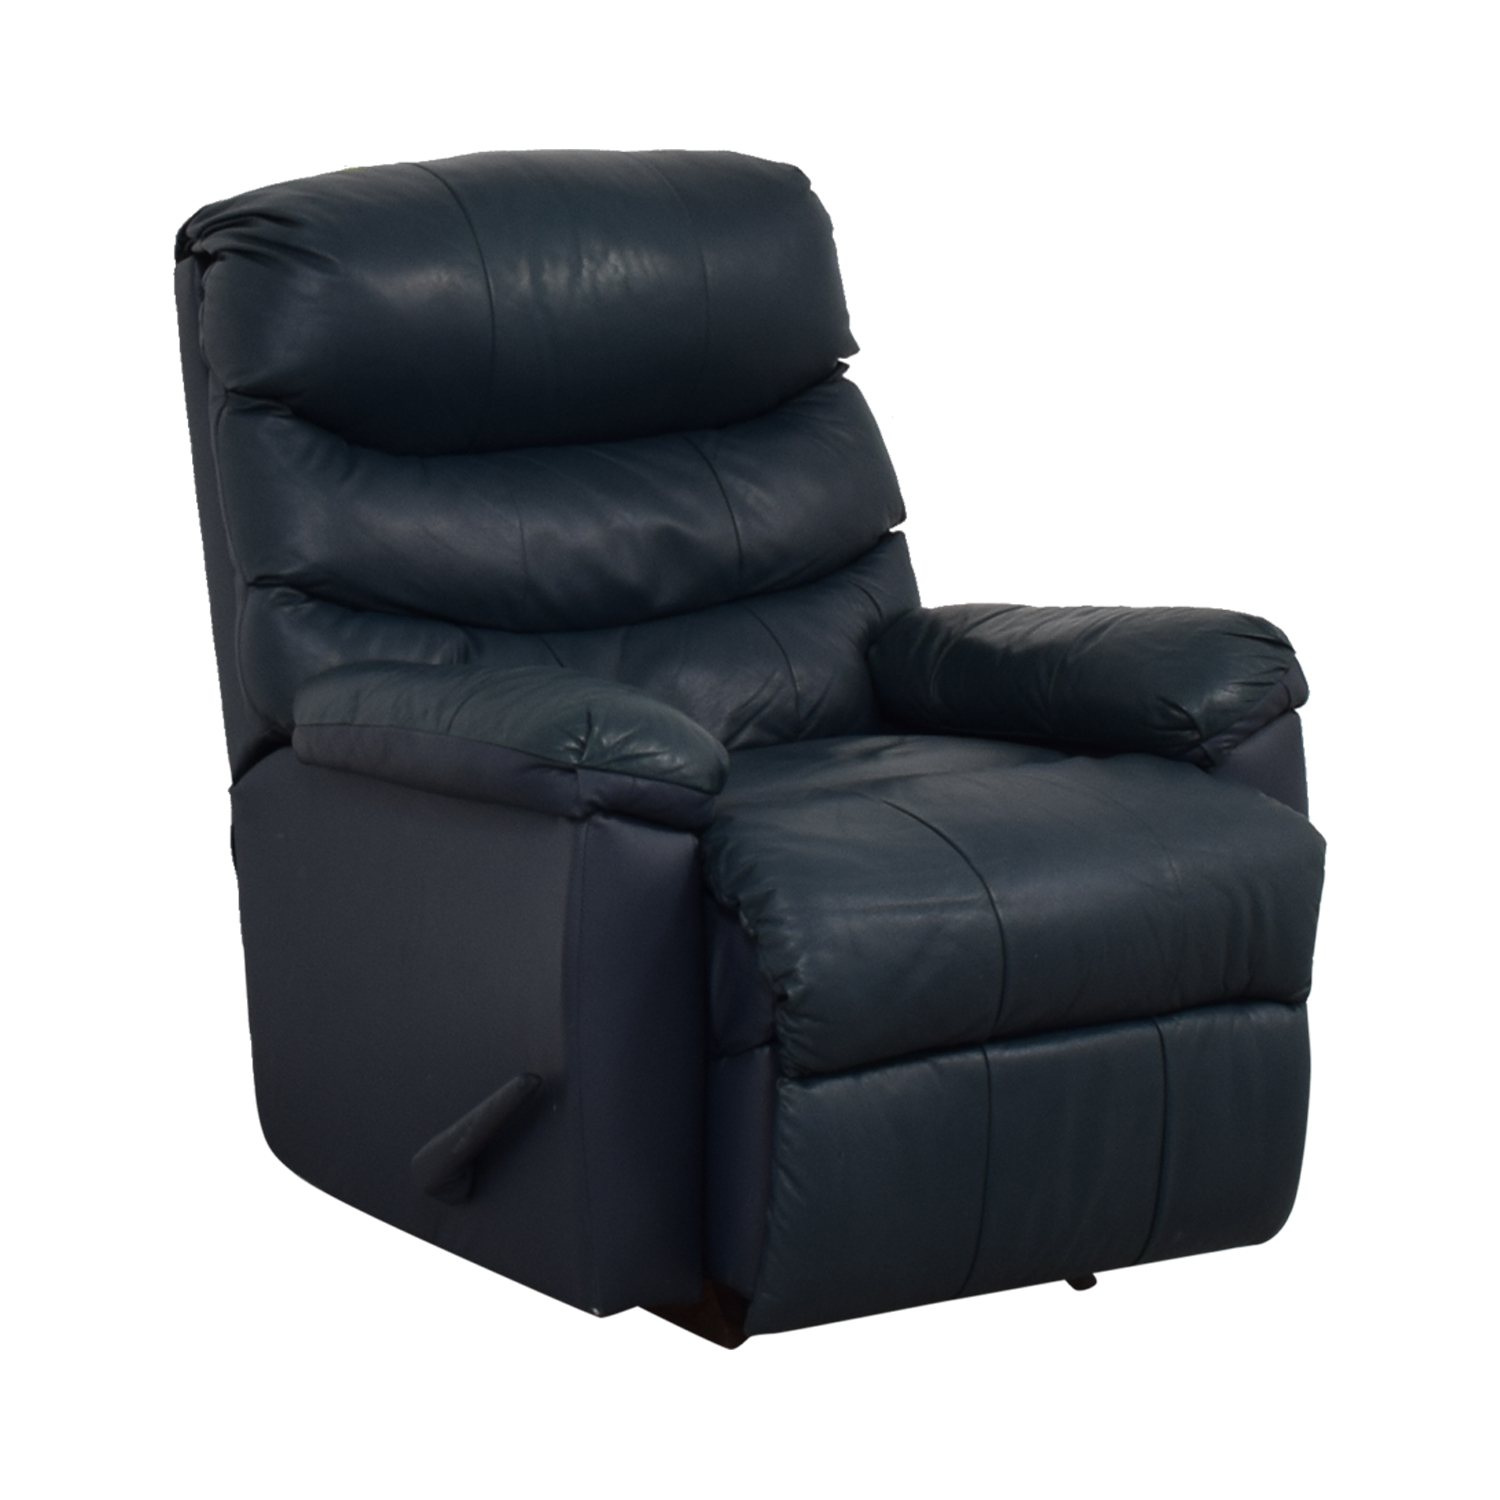 Action Industries Action Industries Recliner